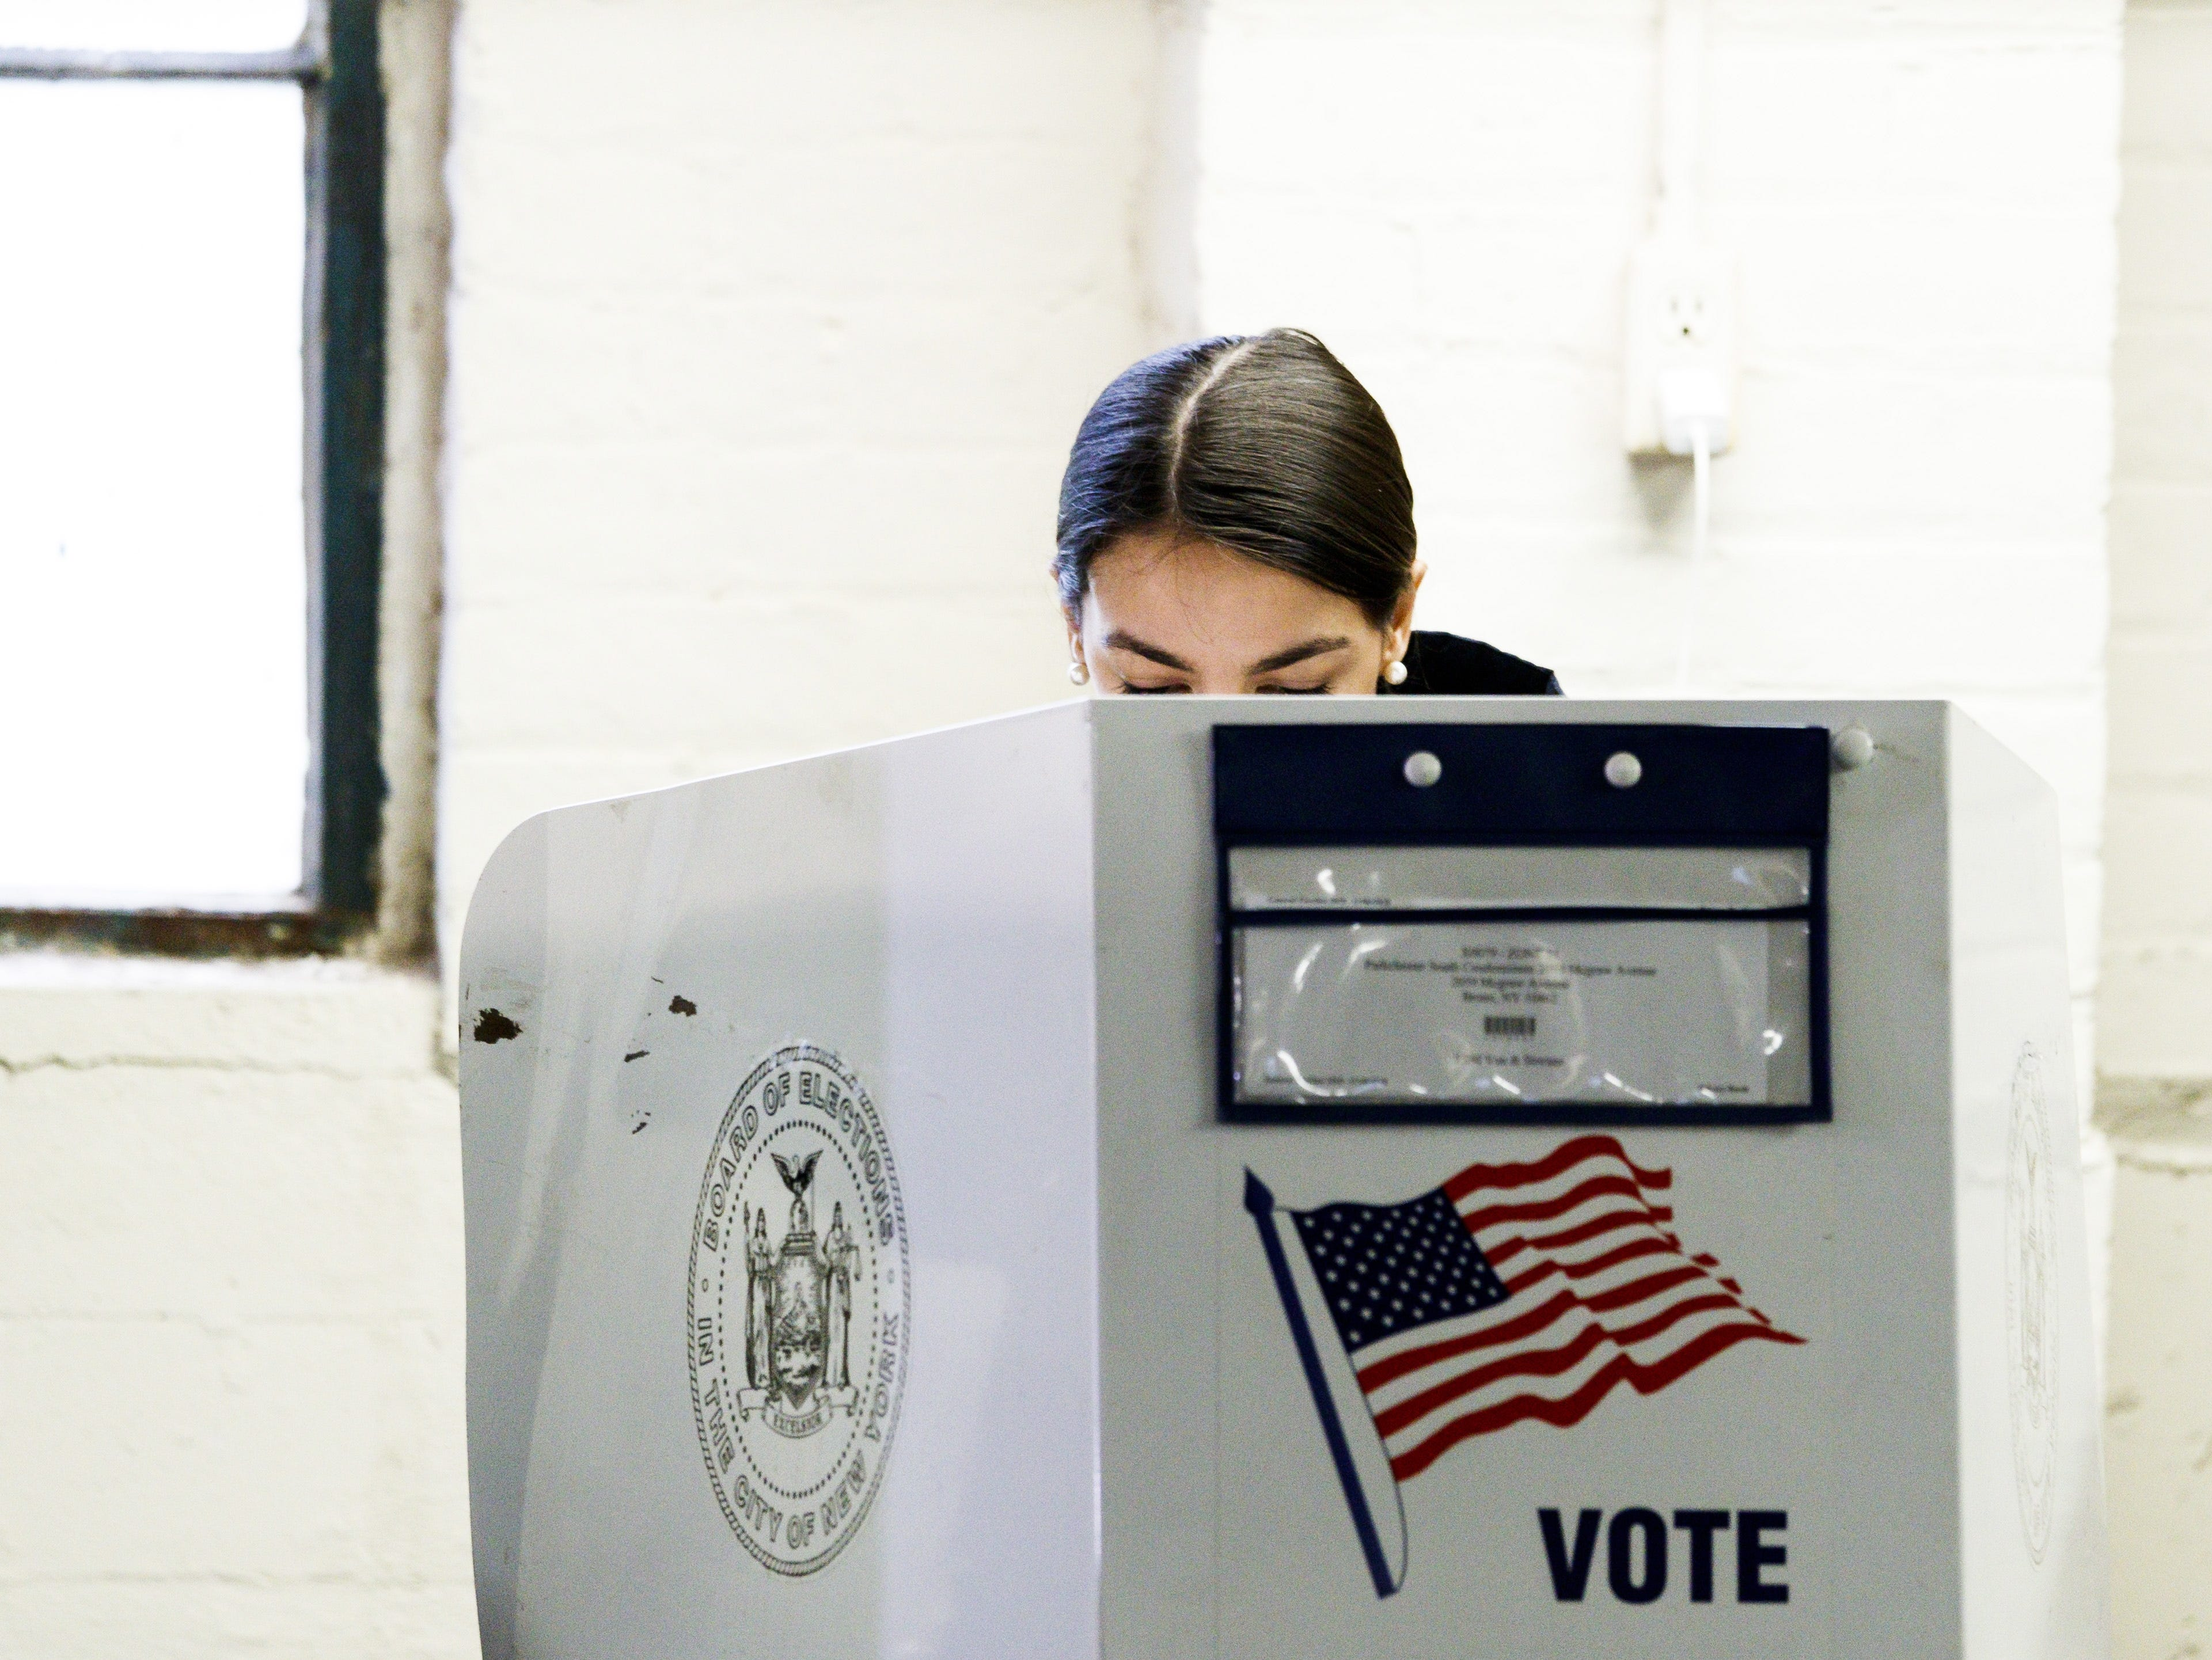 Alexandria Ocasio-Cortez, who is running as the Democratic nominee for New York's 14th congressional district, casts her ballots in the 2018 mid-term general election at a polling site in the Bronx, New York on Nov. 6, 2018.